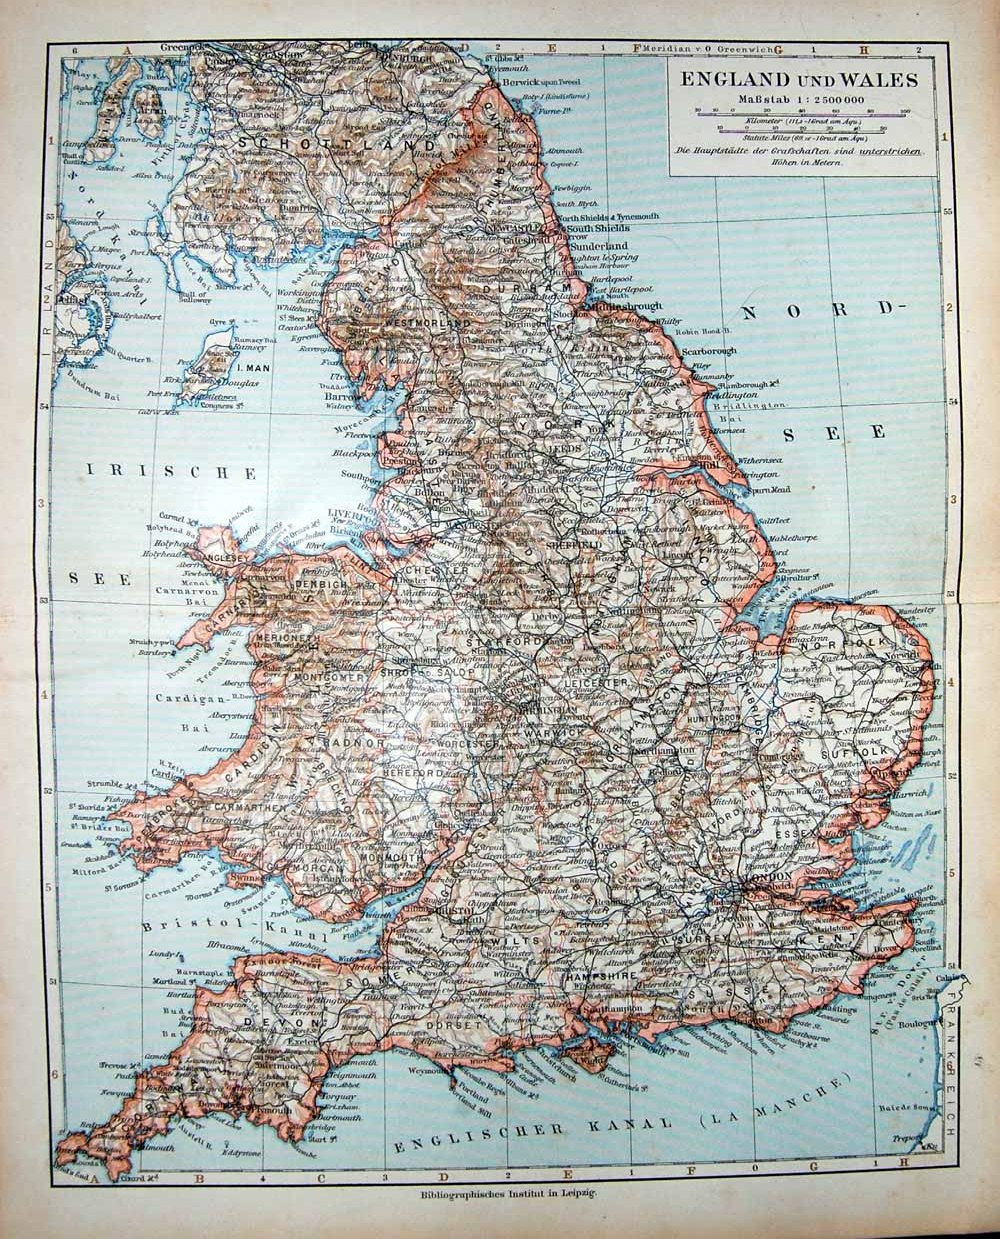 Old print antique and victorian art prints paintings world maps print meyers german atlas 1900 map england wales isle man 151f167 old original gumiabroncs Gallery